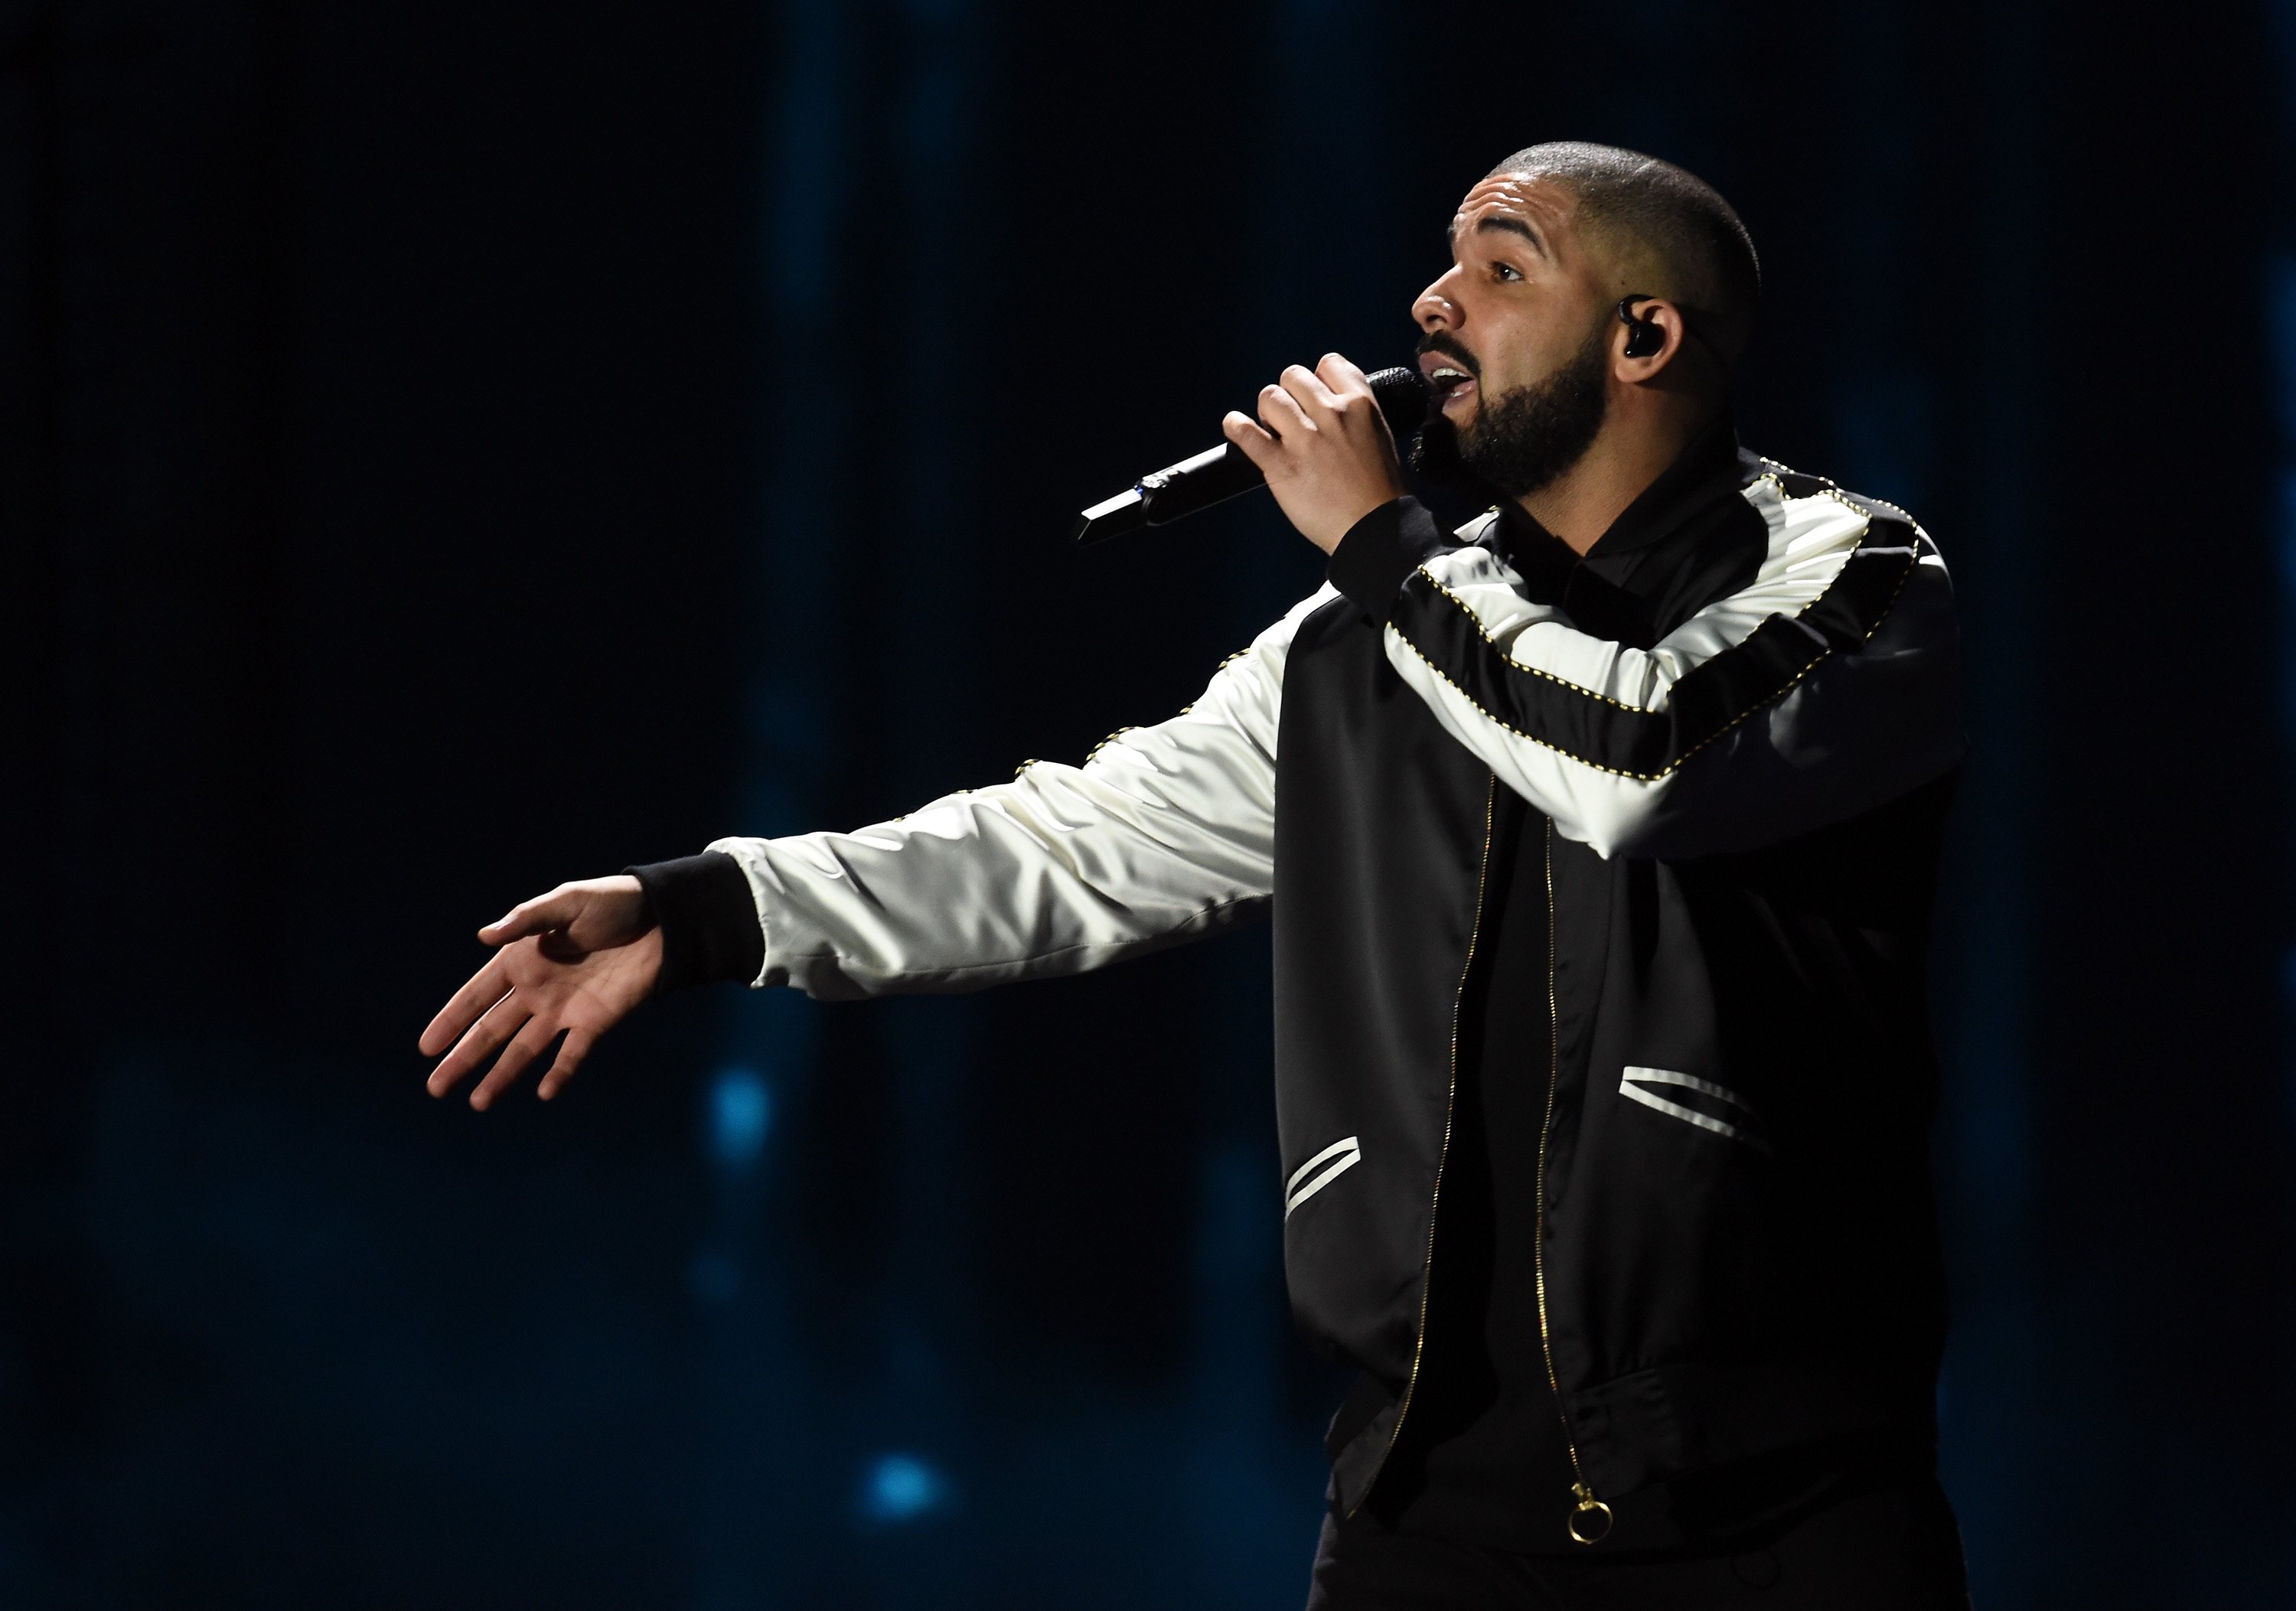 Drake performs at the iHeartRadio Music Festival on September 23, 2016 in Las Vegas, Nevada. (Photo by Kevin Winter/Getty Images)